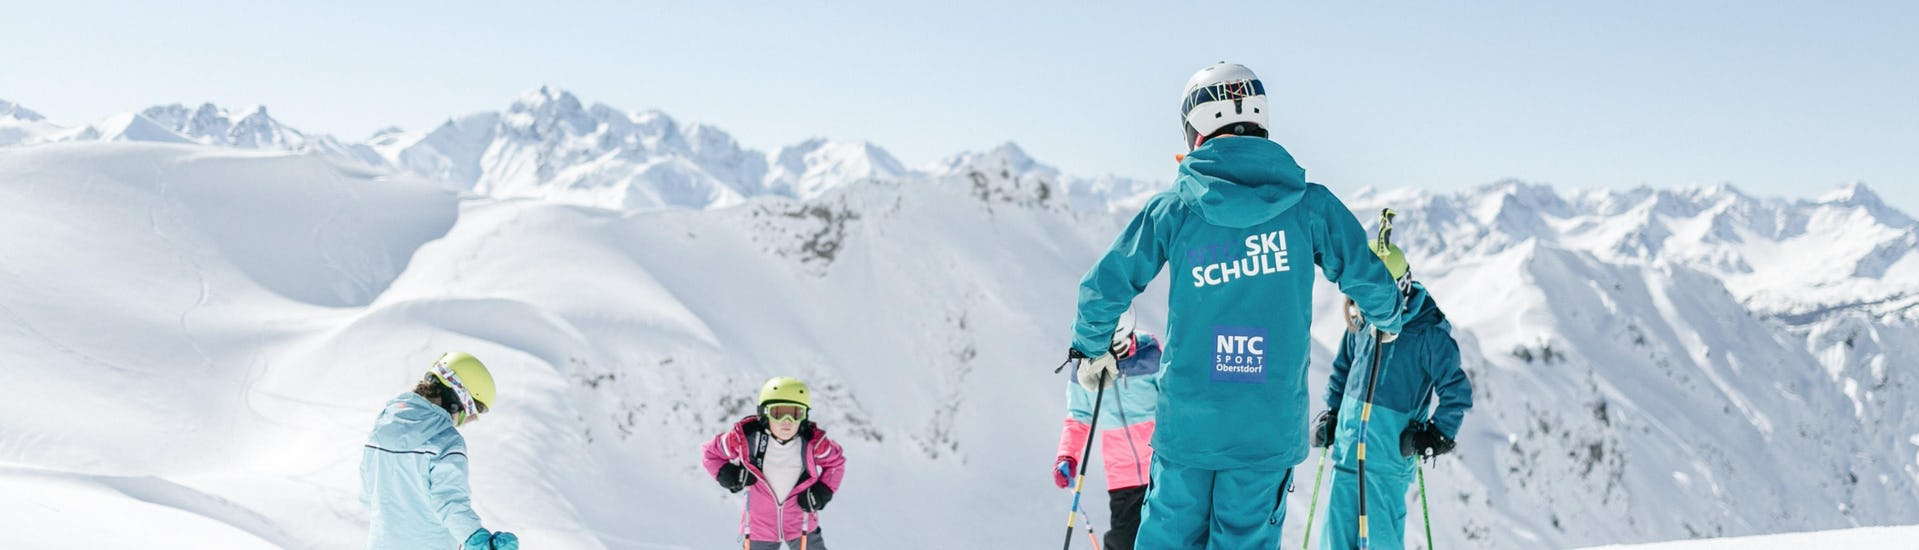 Children benefit from the full attention of the ski instructor from the ski school NTC Skischule Oberstdorf during the Private Ski Lessons for Kids - All Levels.